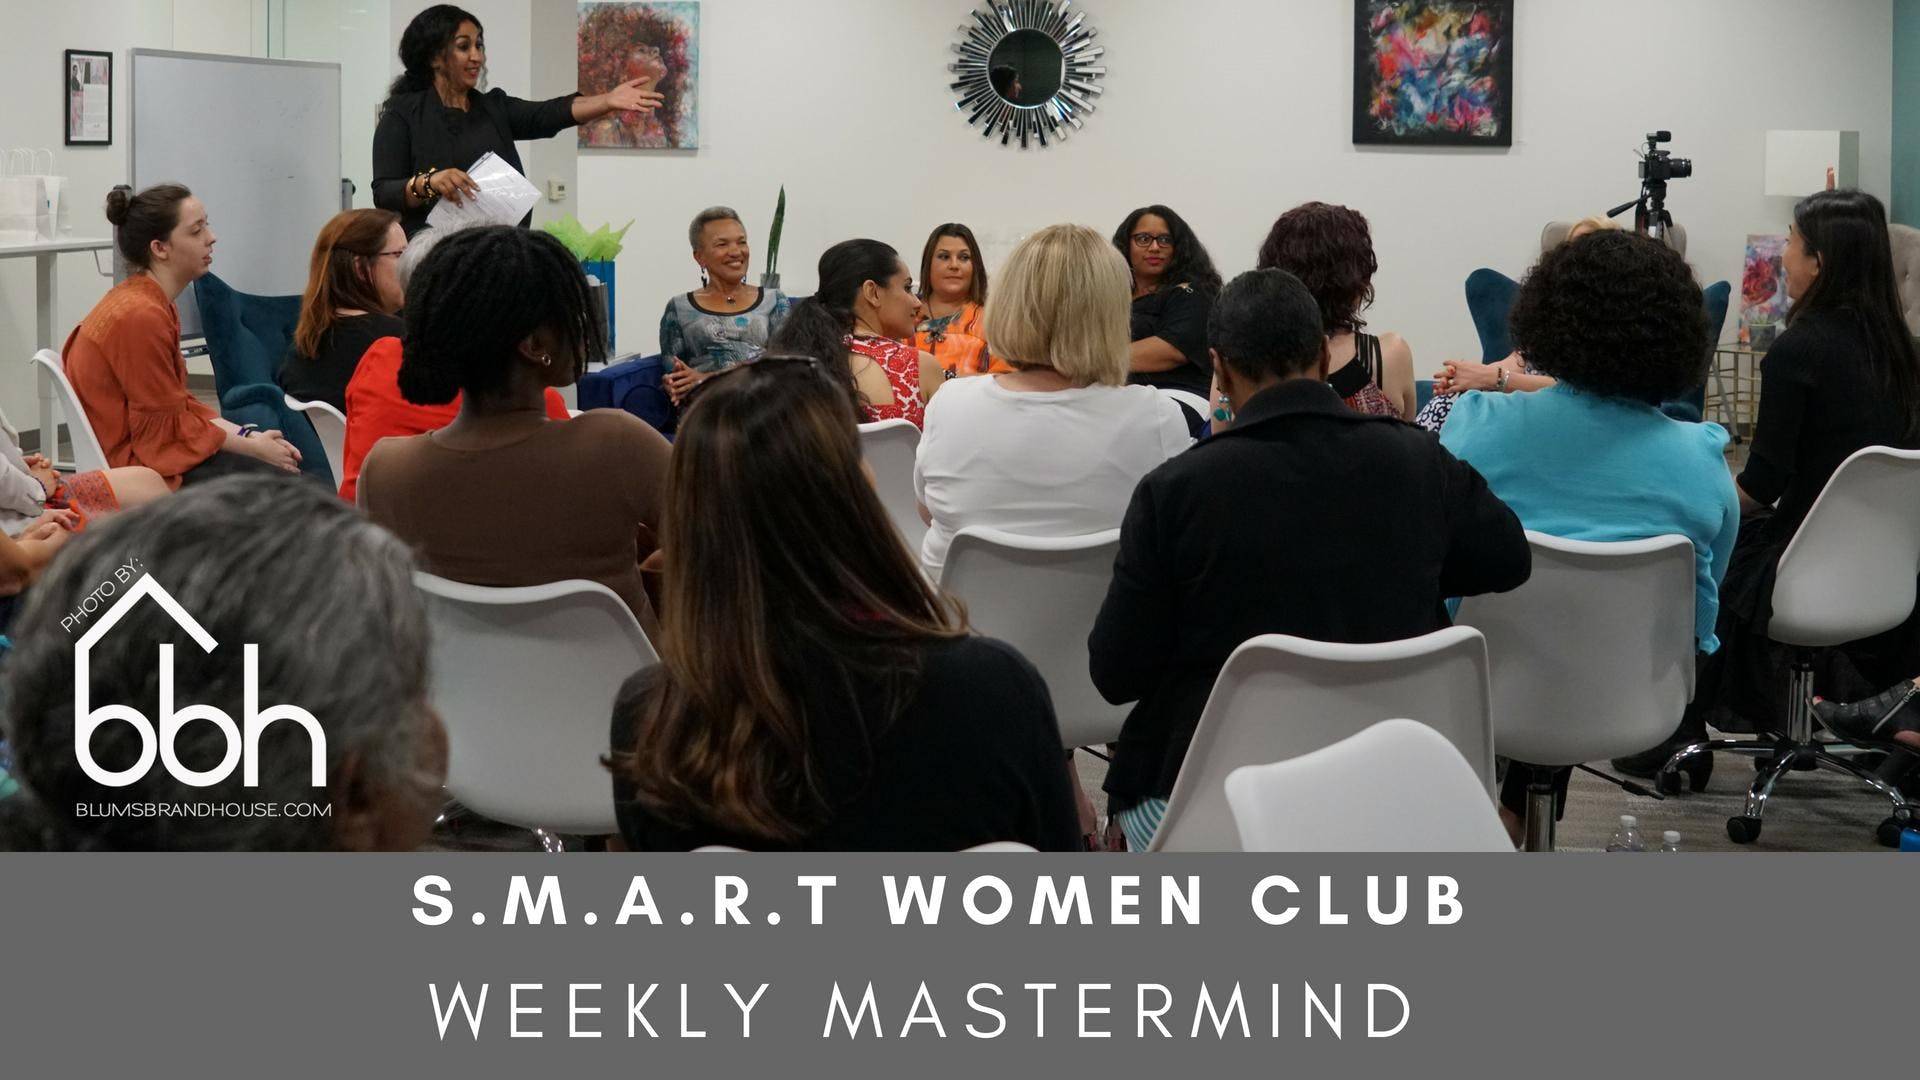 S.M.A.R.T. WOMEN CLUB-WEEKLY MASTERMIND